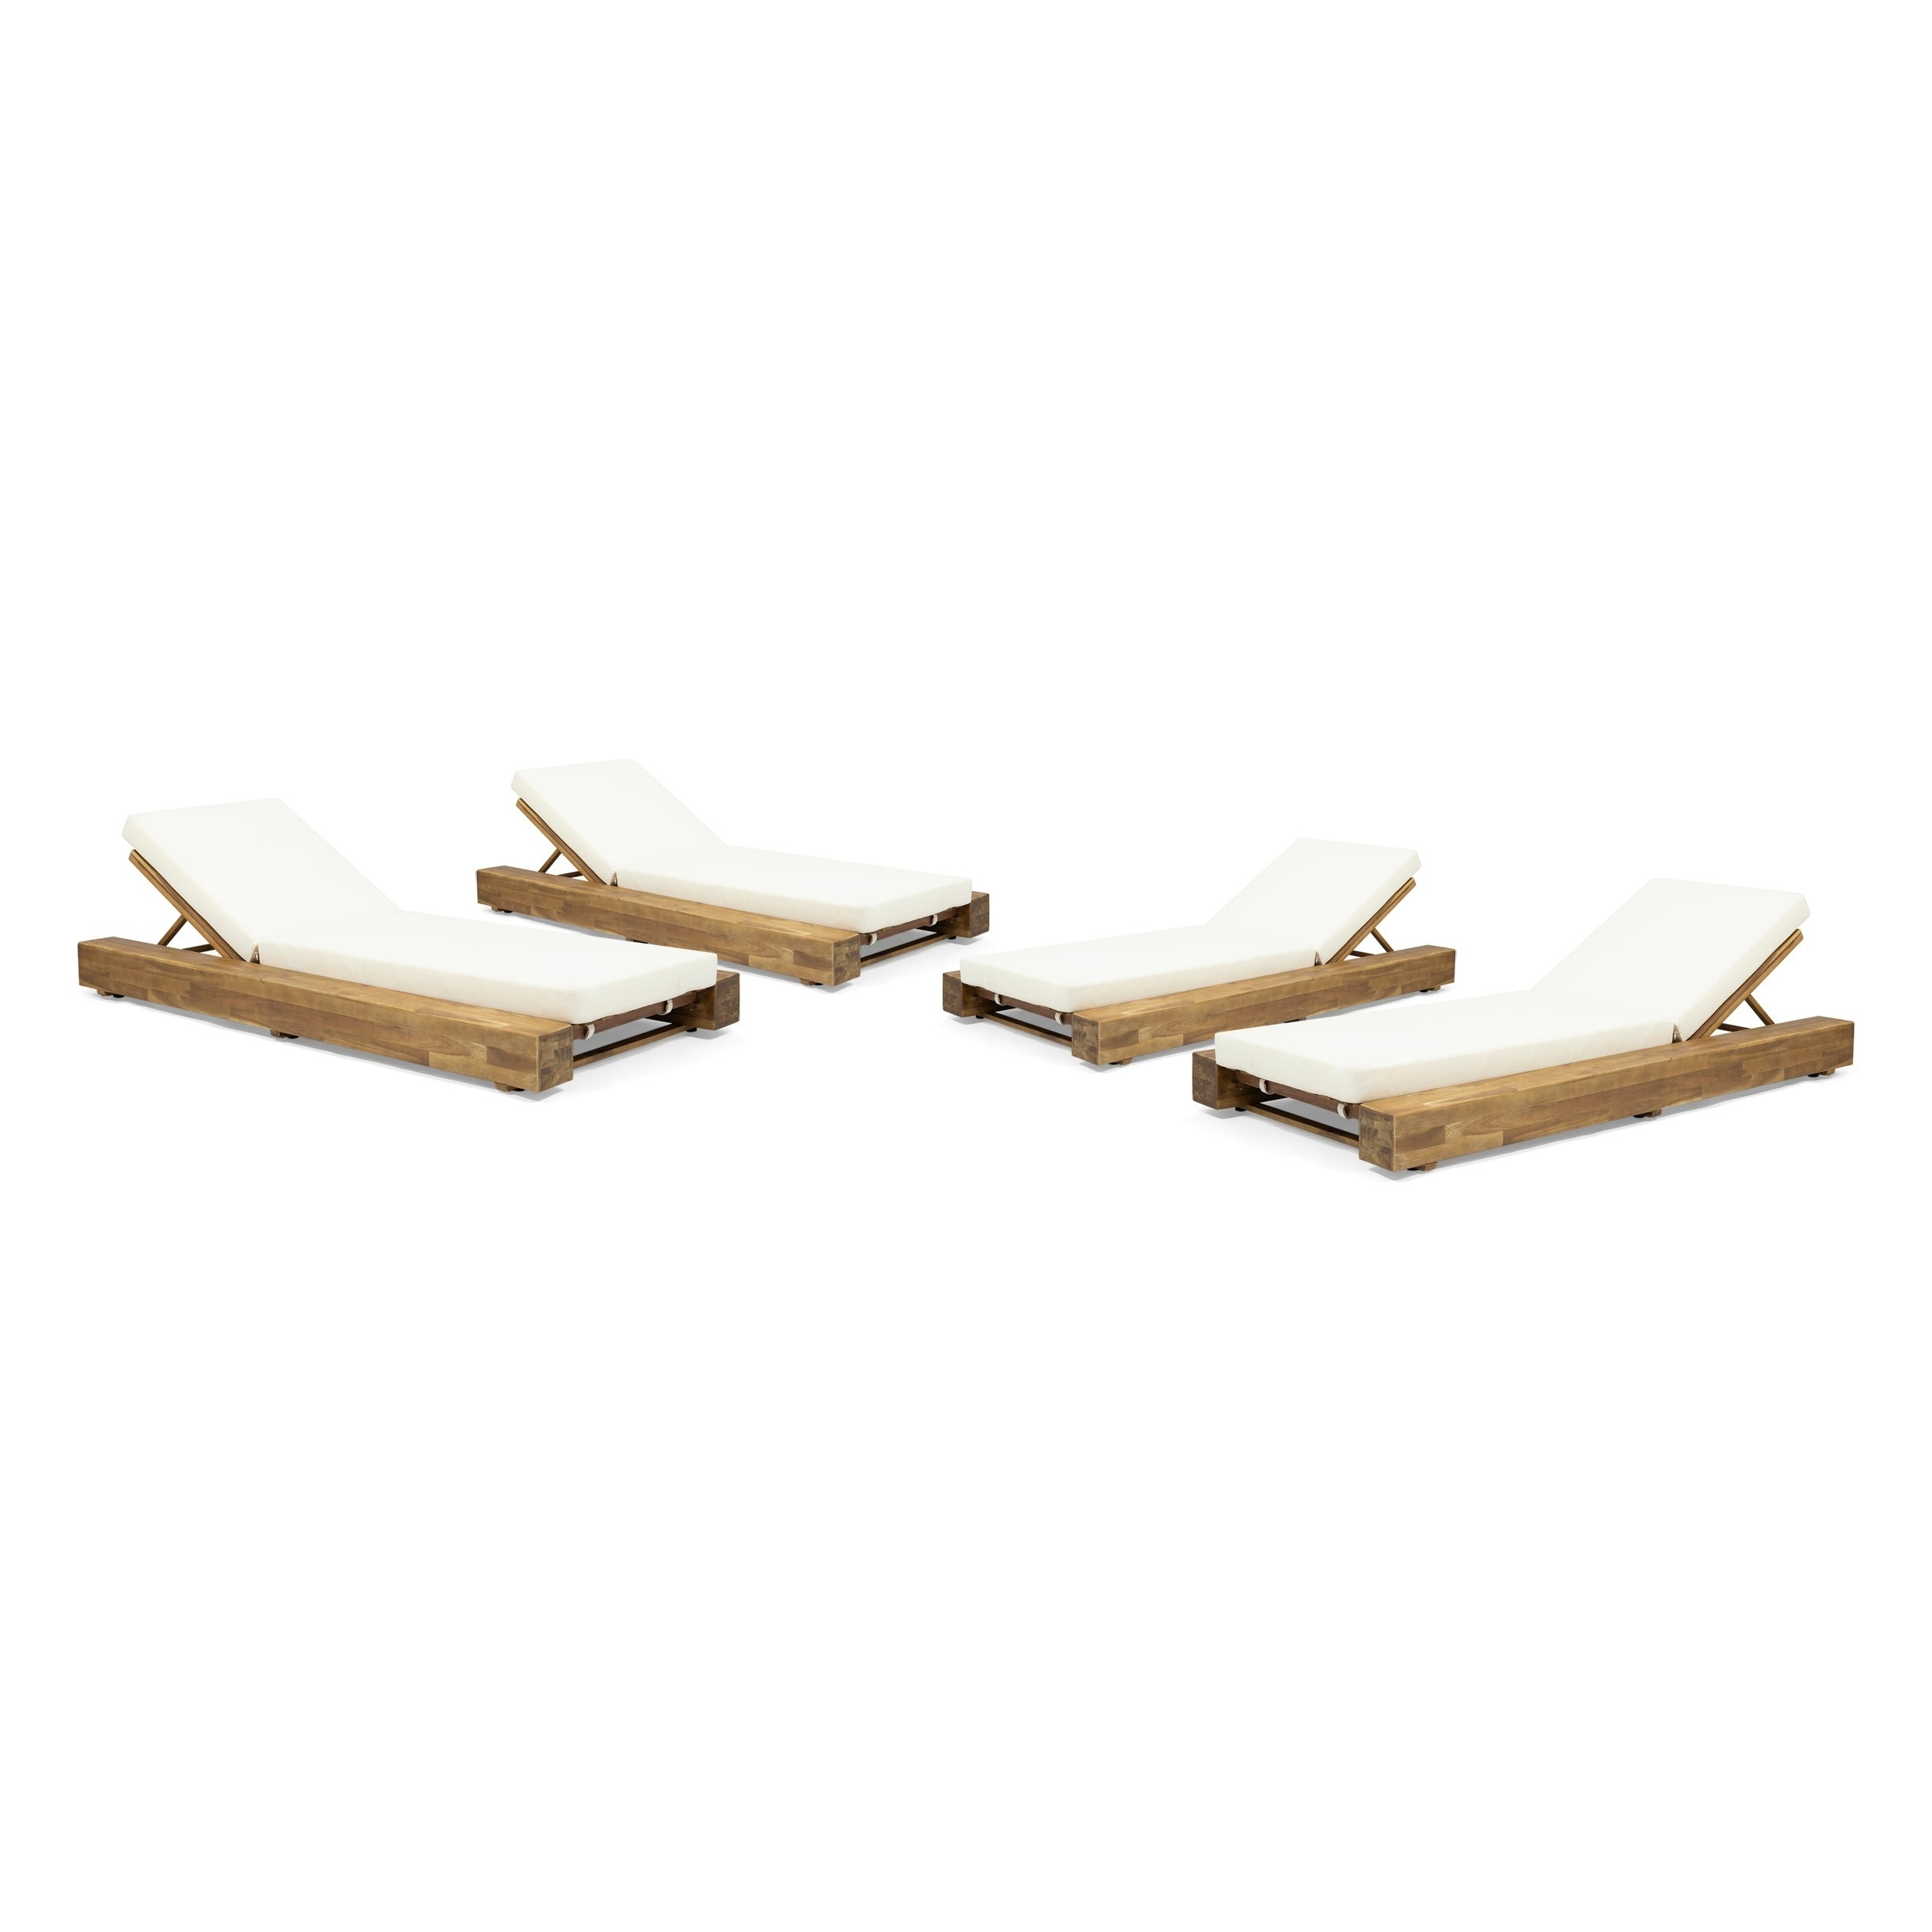 Preferred Outdoor 3 Piece Acacia Wood Chaise Lounge Sets Within Broadway Outdoor Acacia Wood Chaise Lounge And Cushion Sets (Set Of 4) Christopher Knight Home (View 3 of 25)